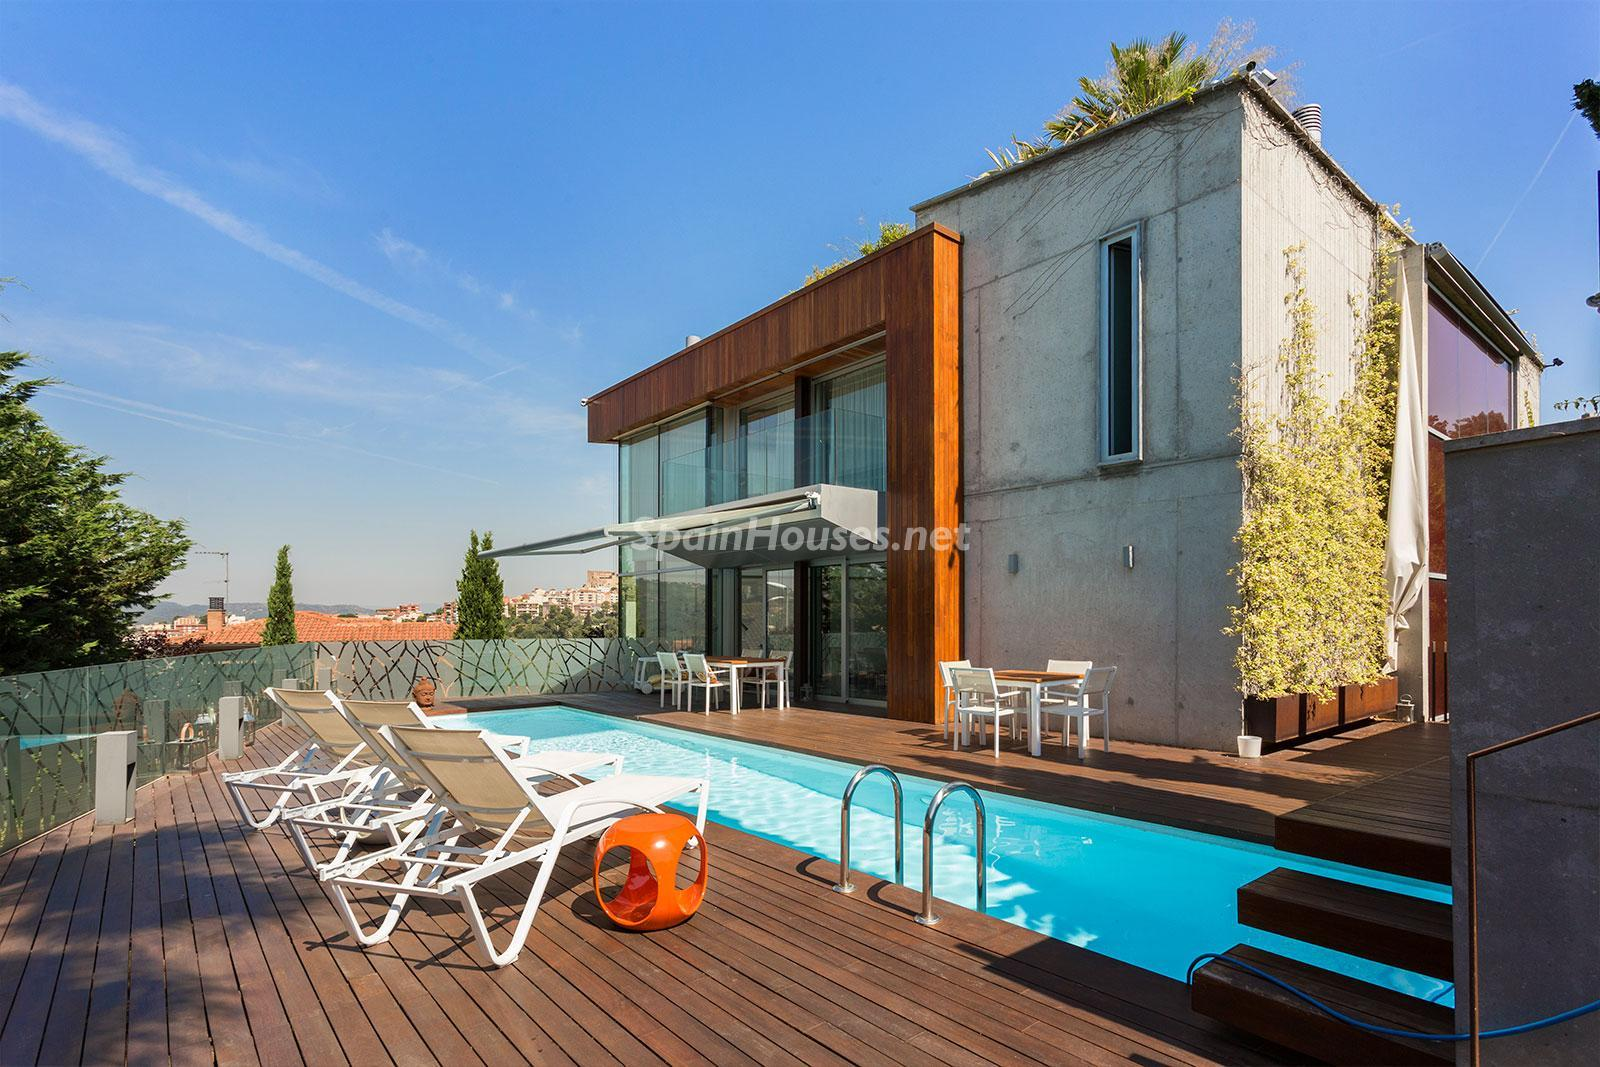 4. House for sale in Barcelona city - Superb 5 bed home in Barcelona features 2 swimming pools and a huge garden